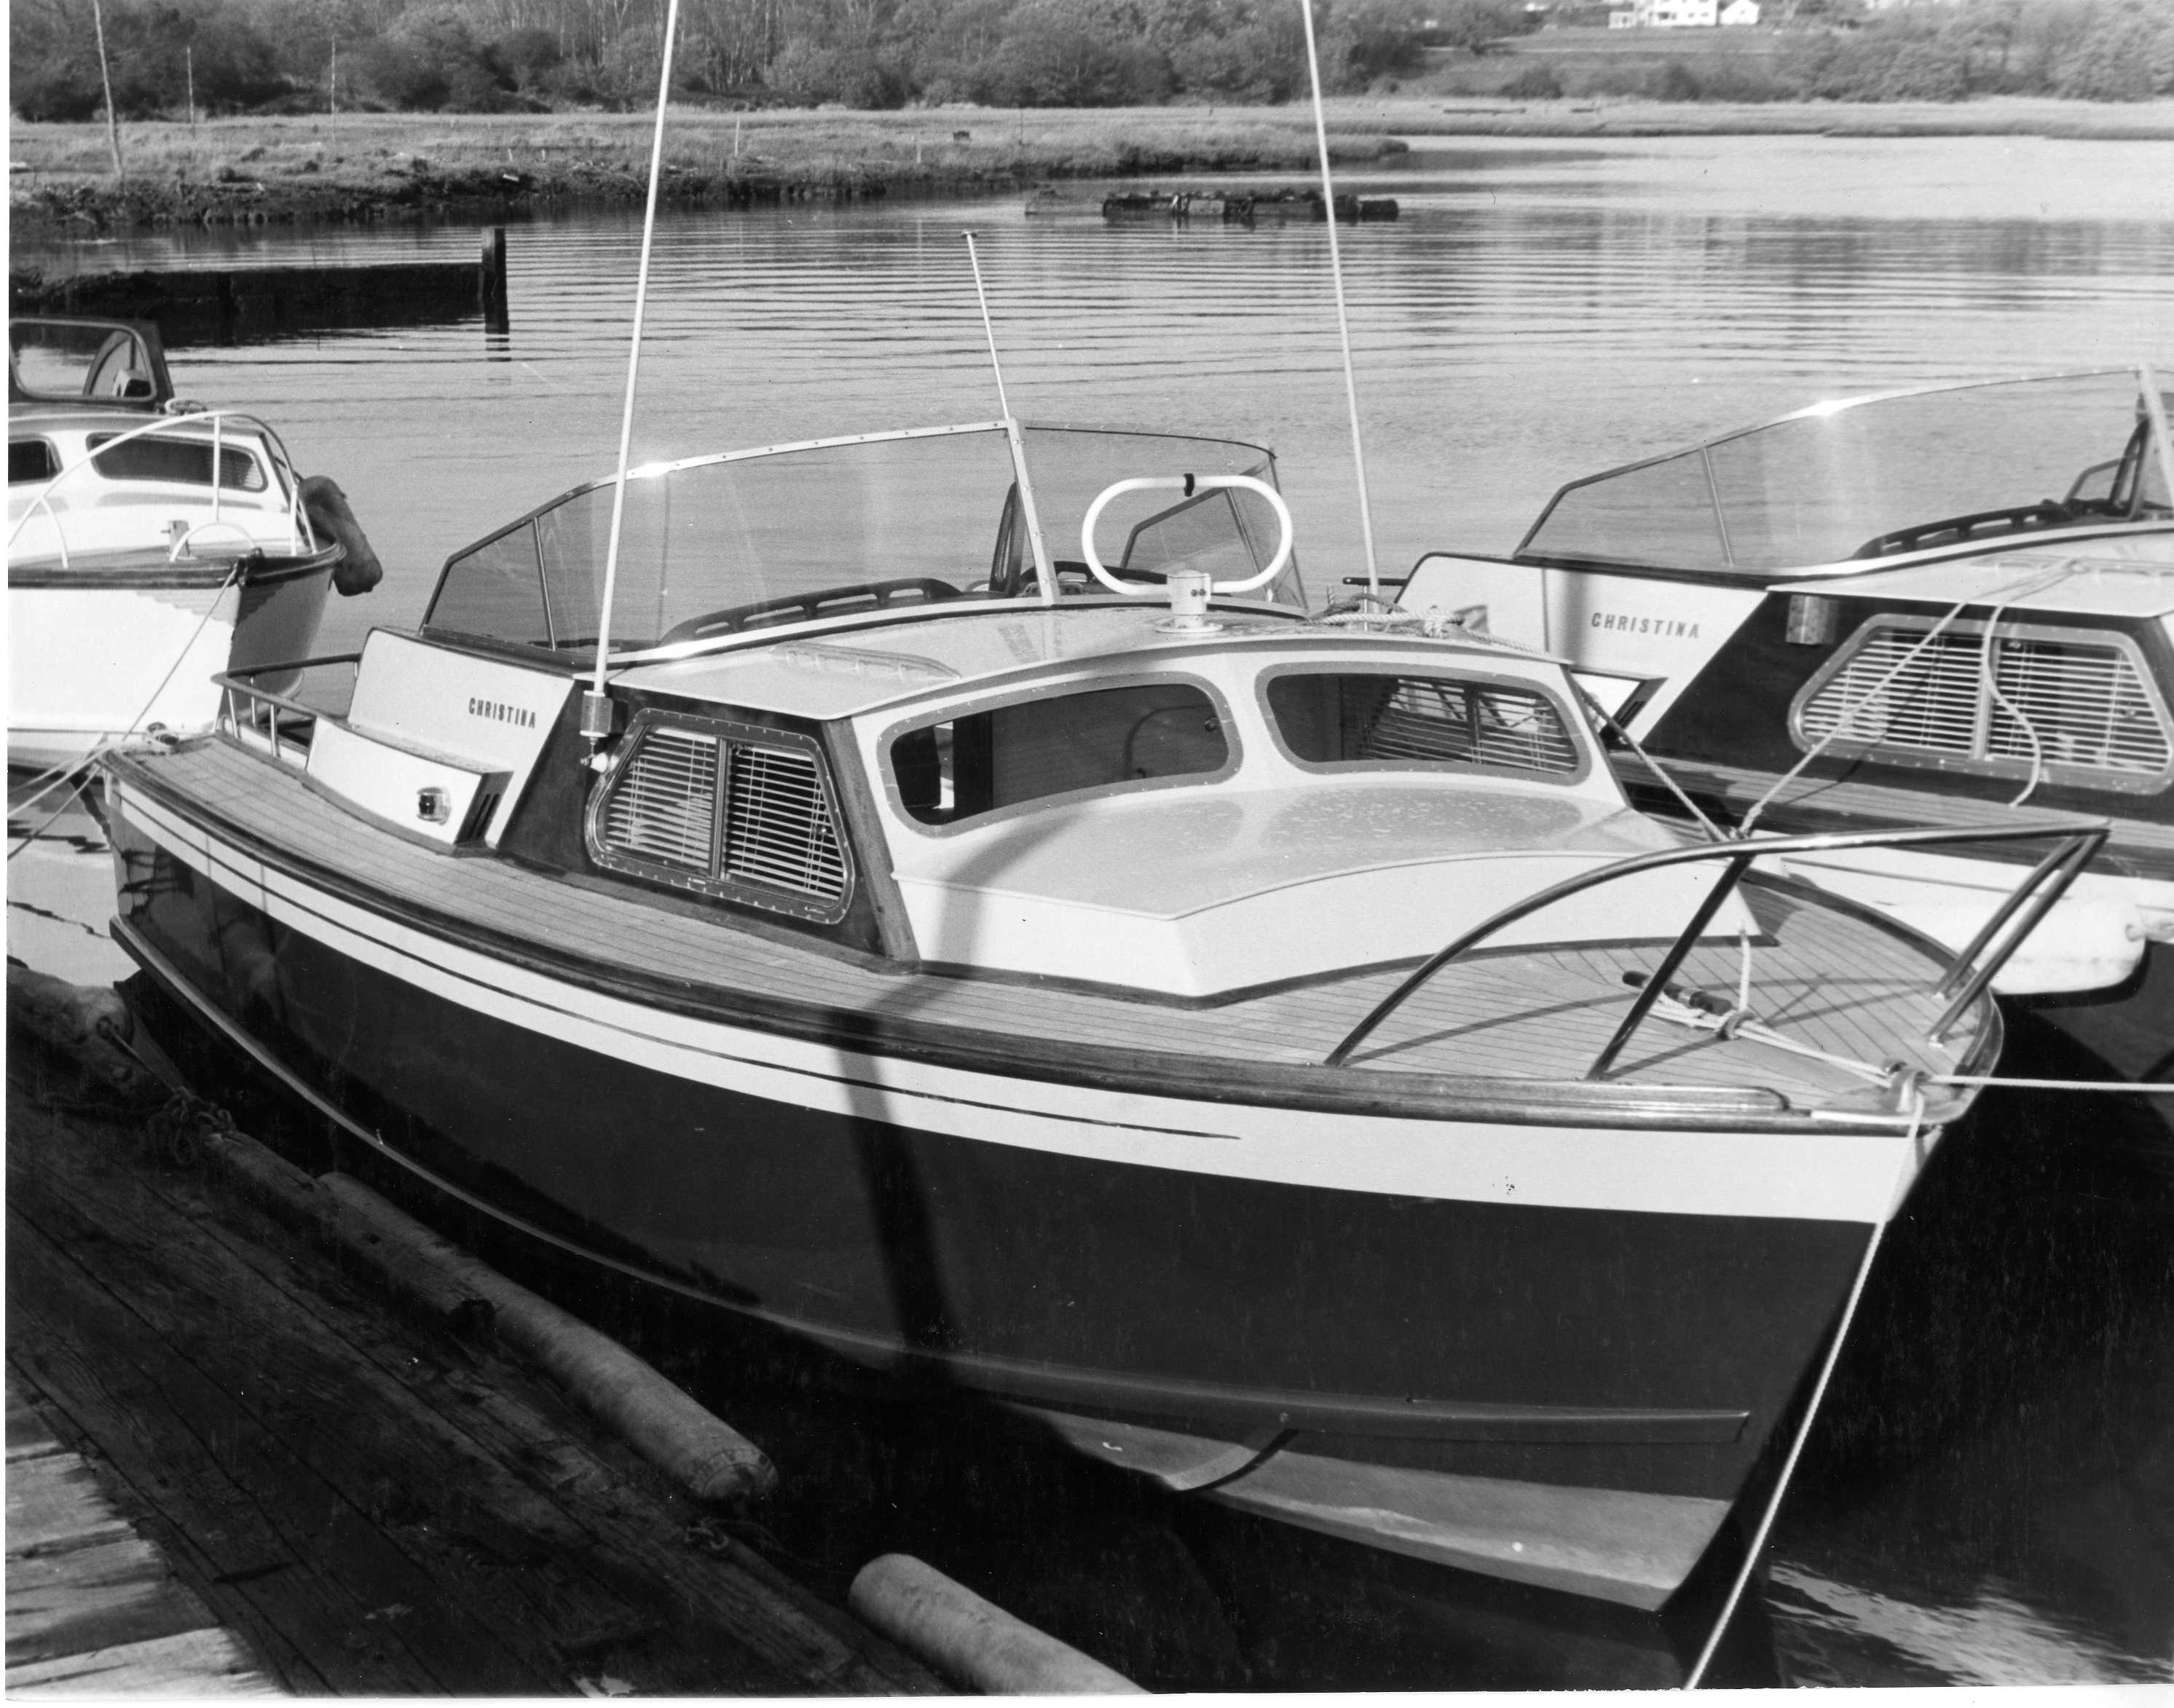 Christina May 1960 - Moored up